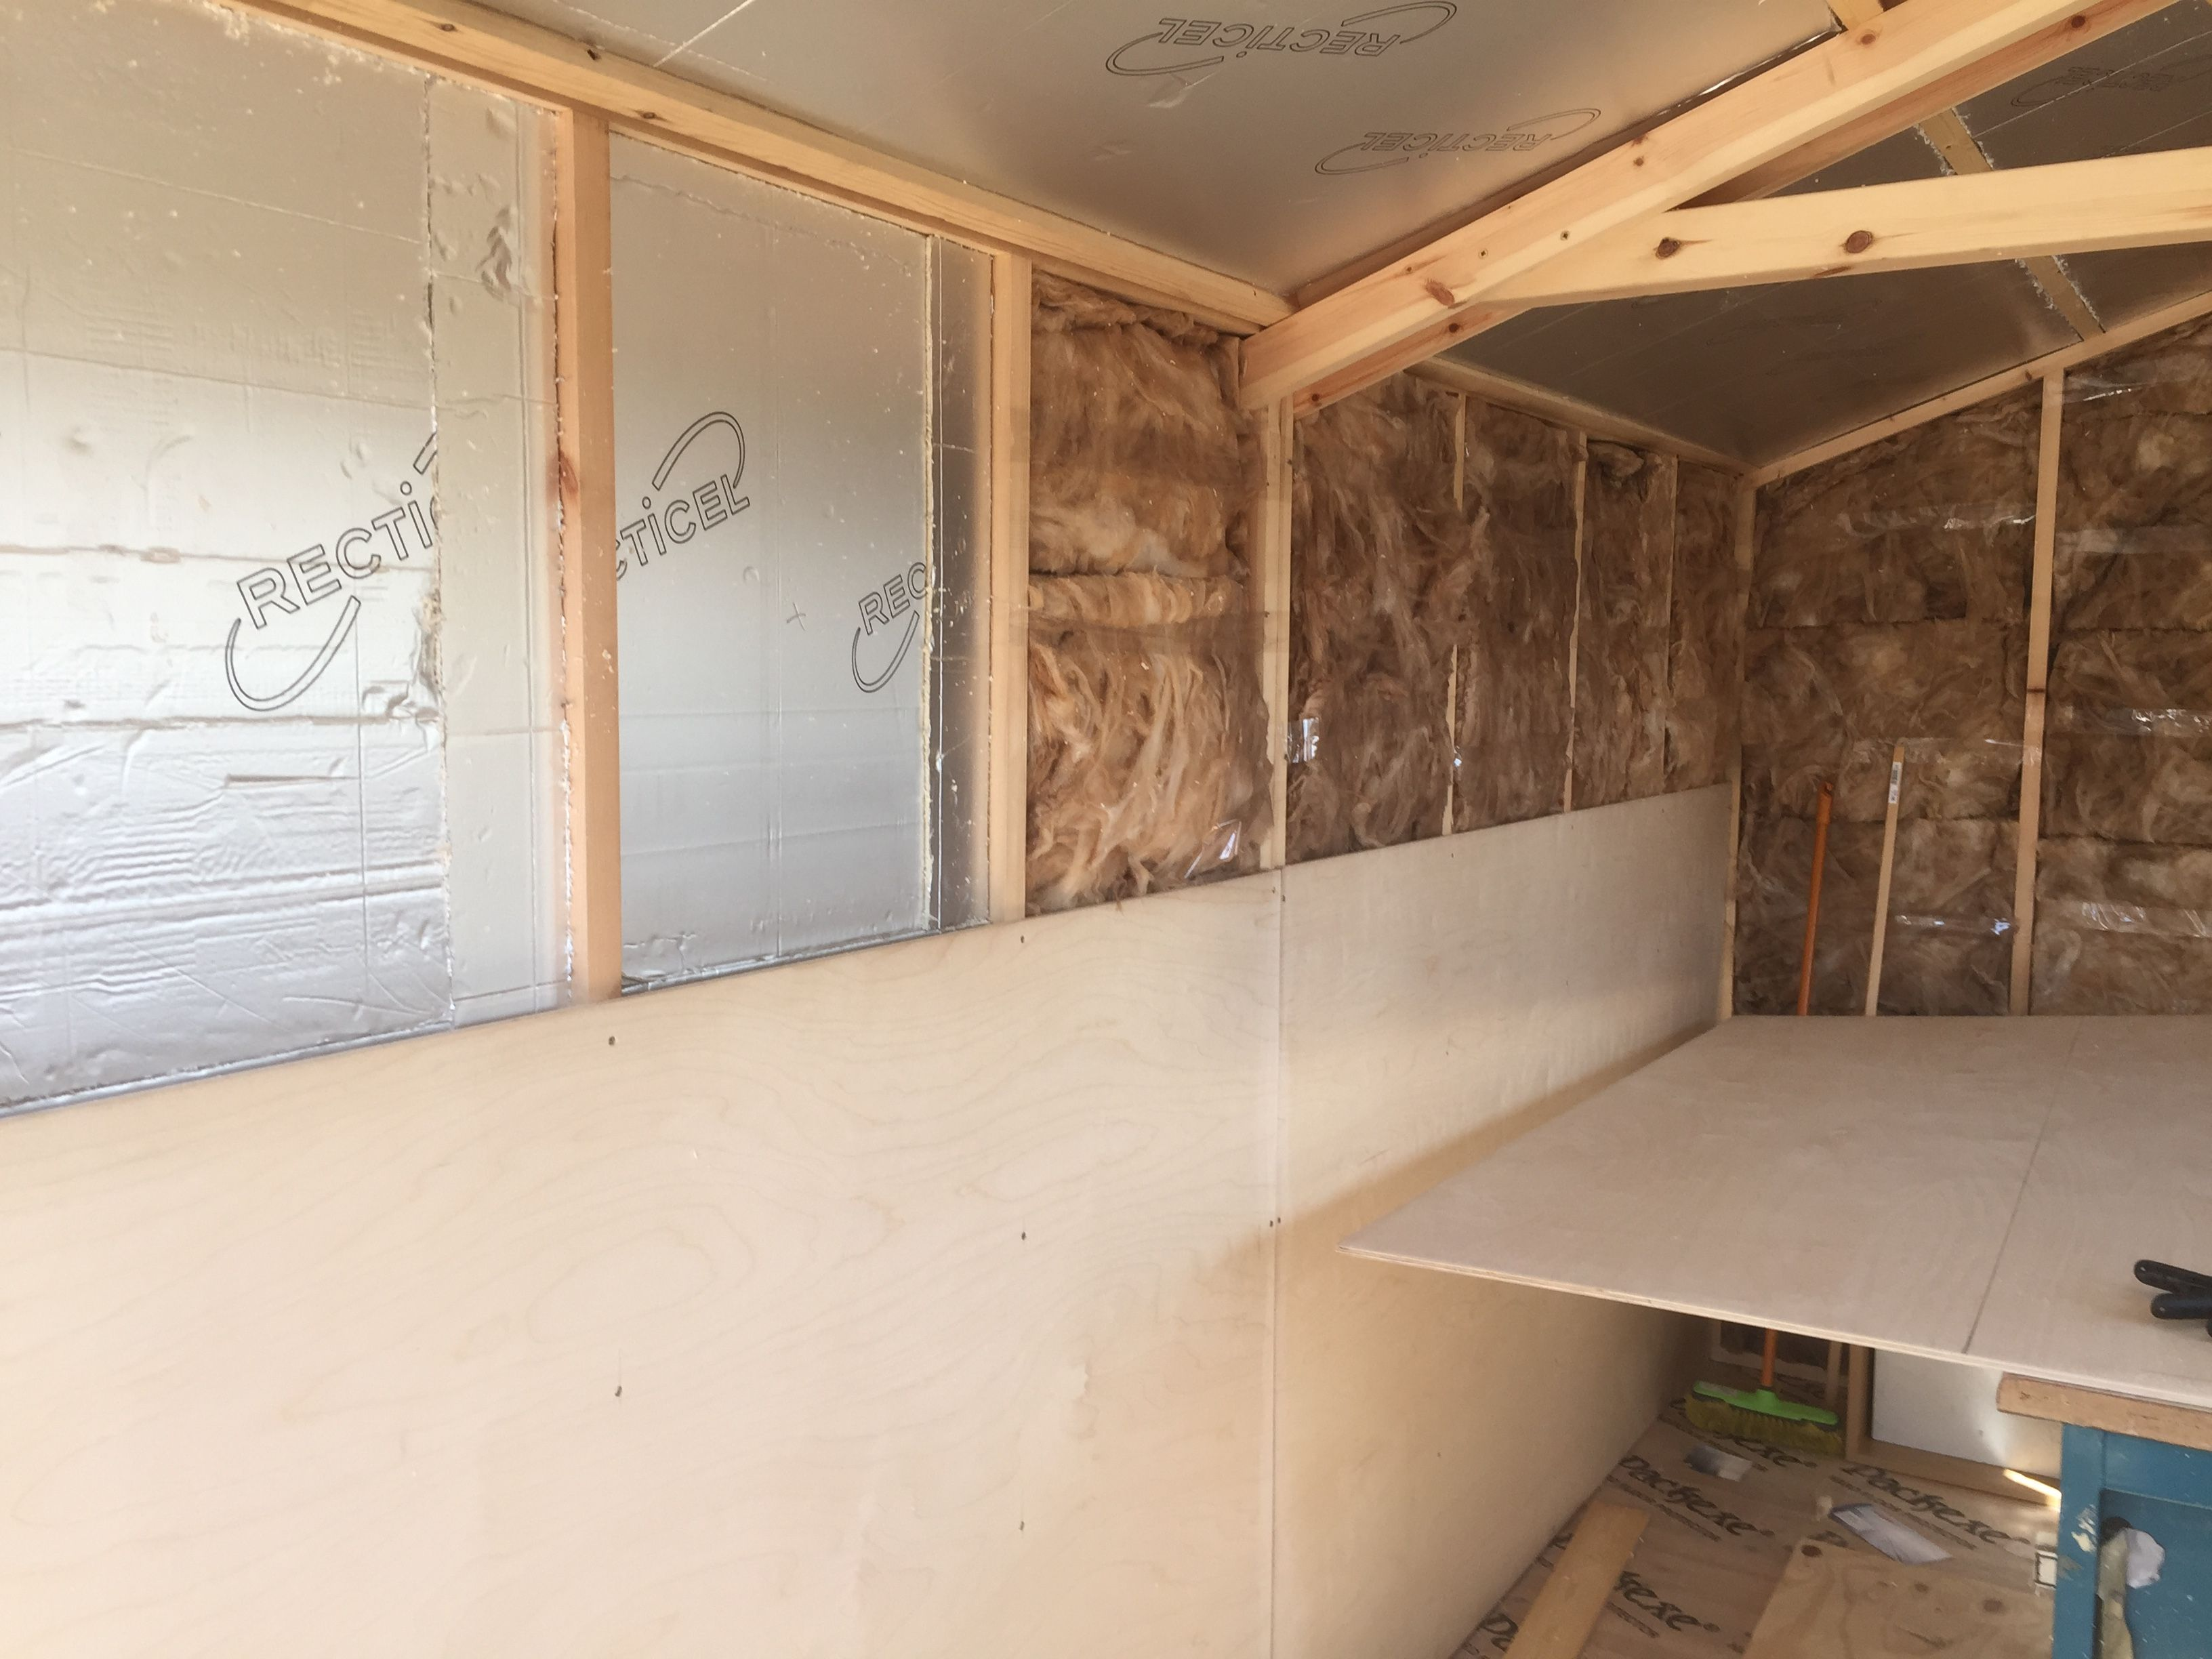 Insulation And Boarding Out Under Way Shed Decor Garage Makeover Studio Shed